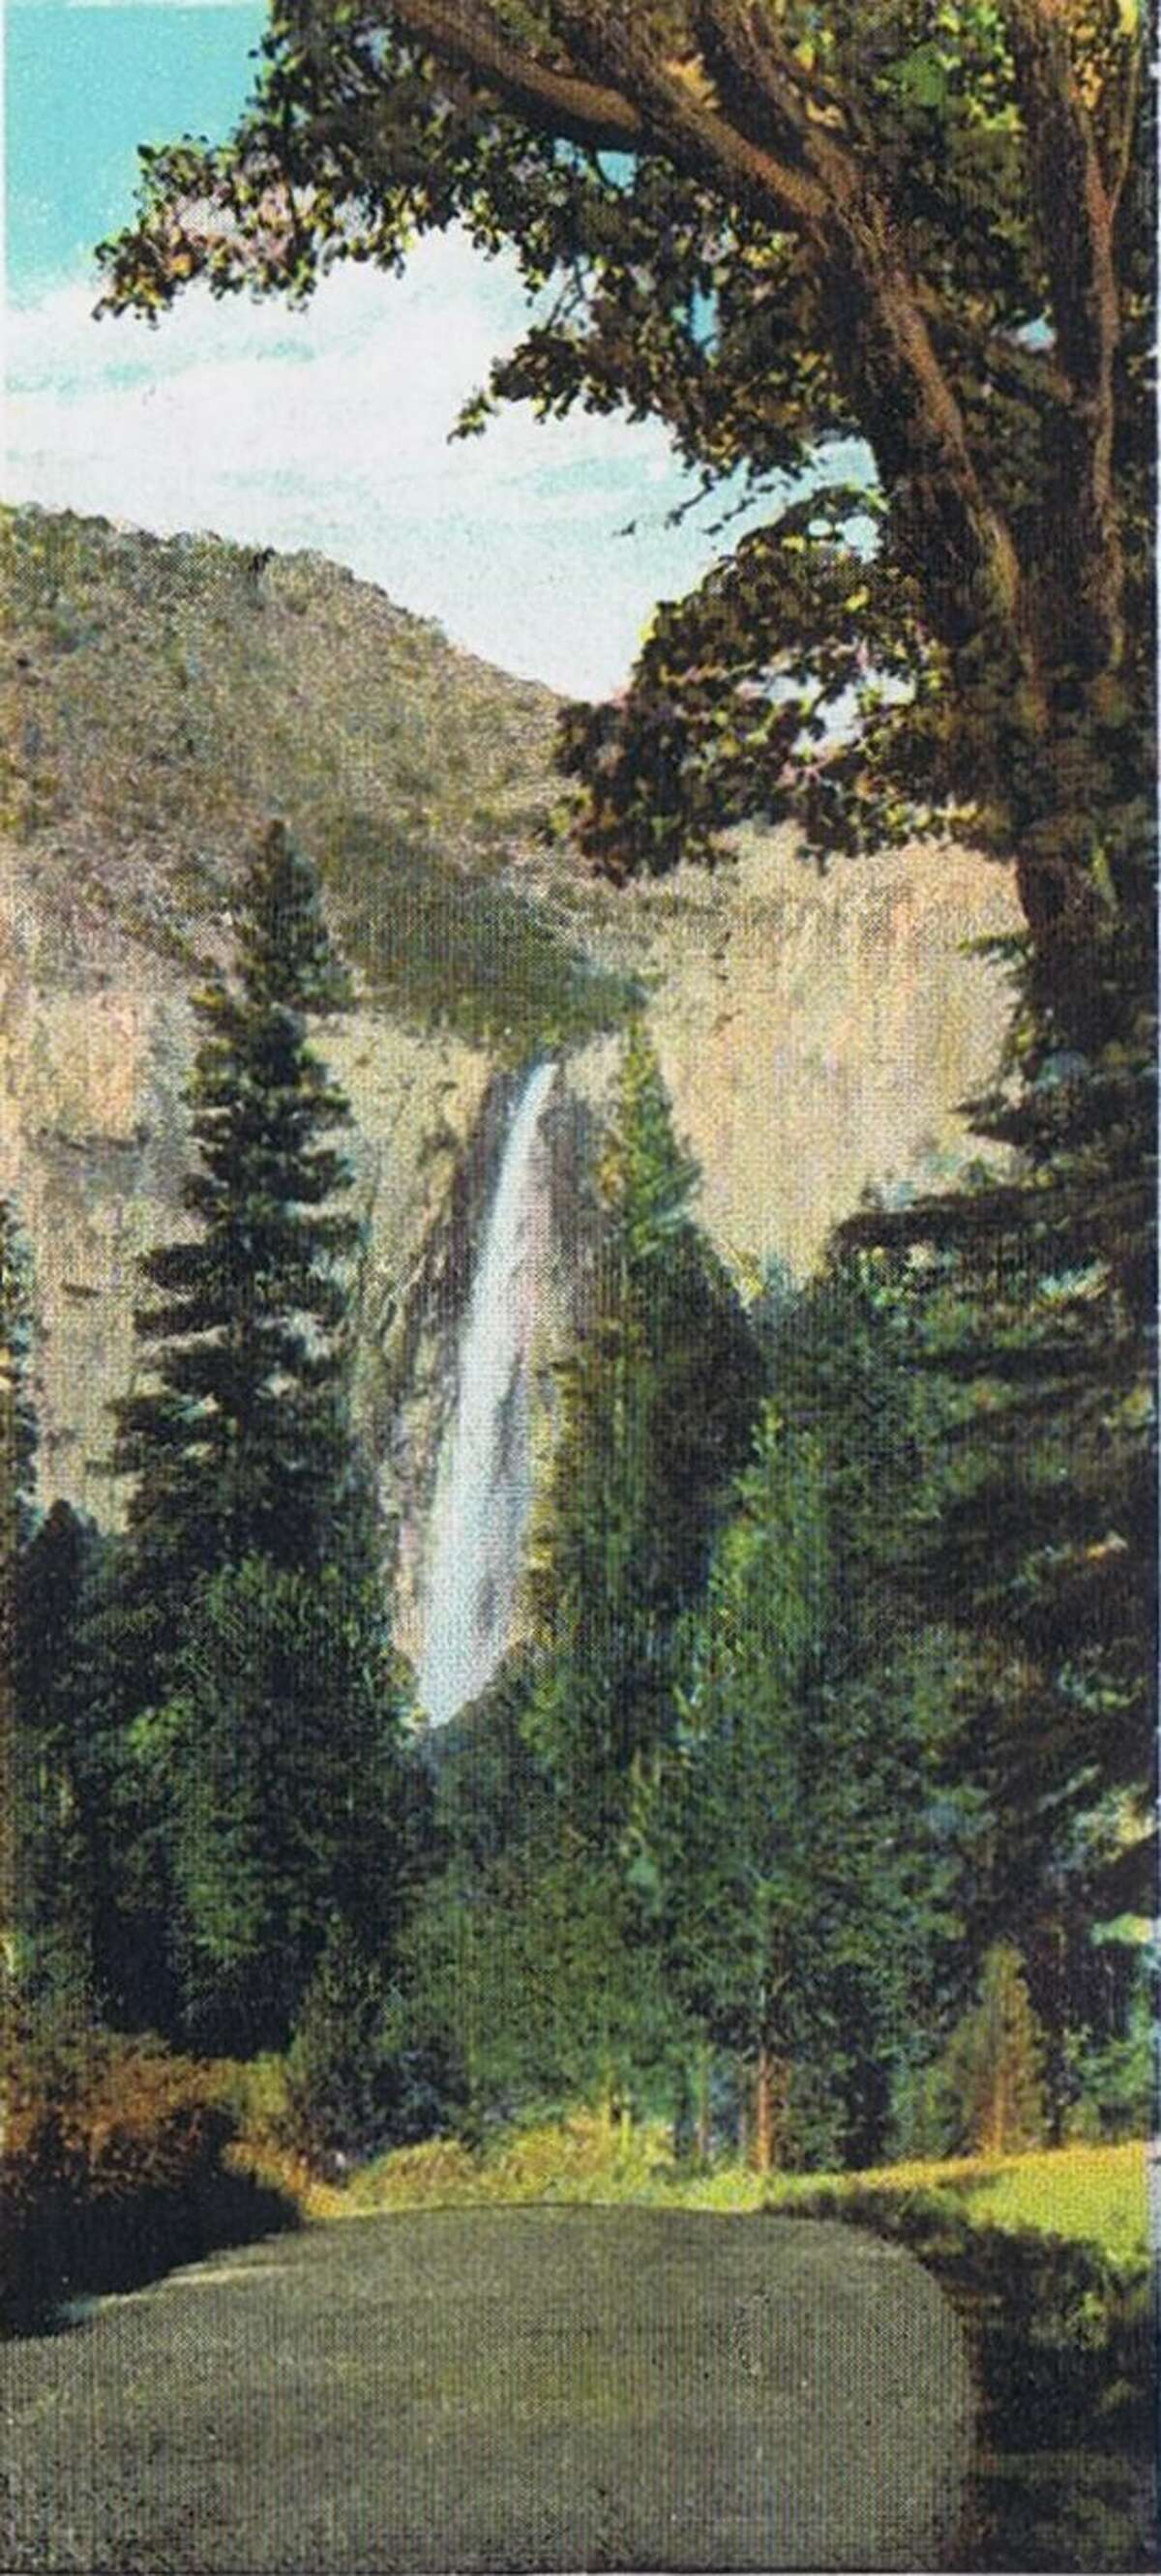 Bridal Veil Falls, Yosemite National Park souvenir brochure from the early 1920's.